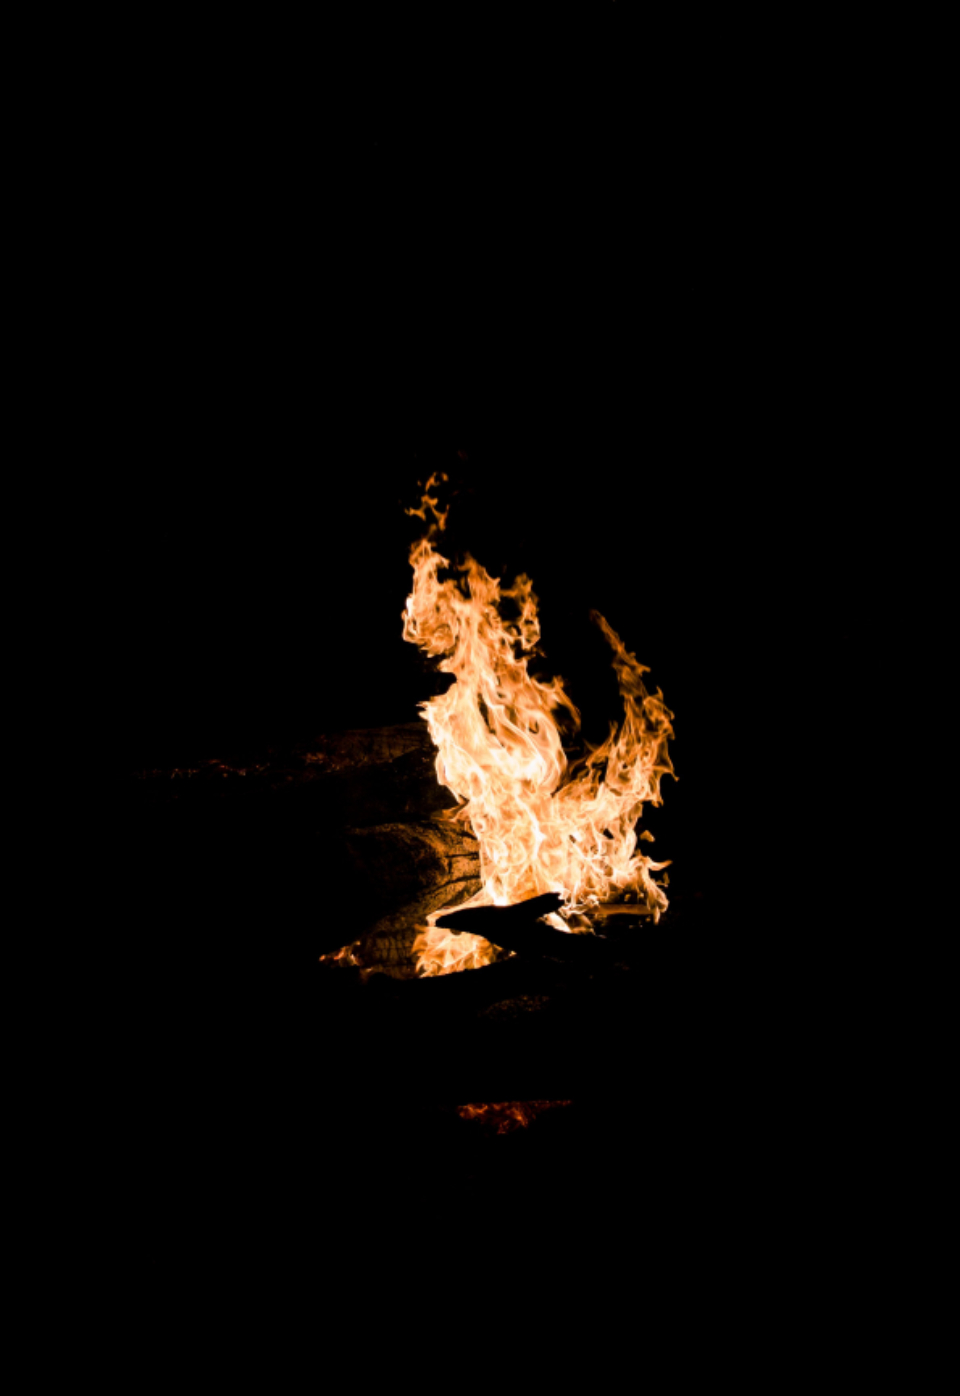 Free stock photo of flame fire